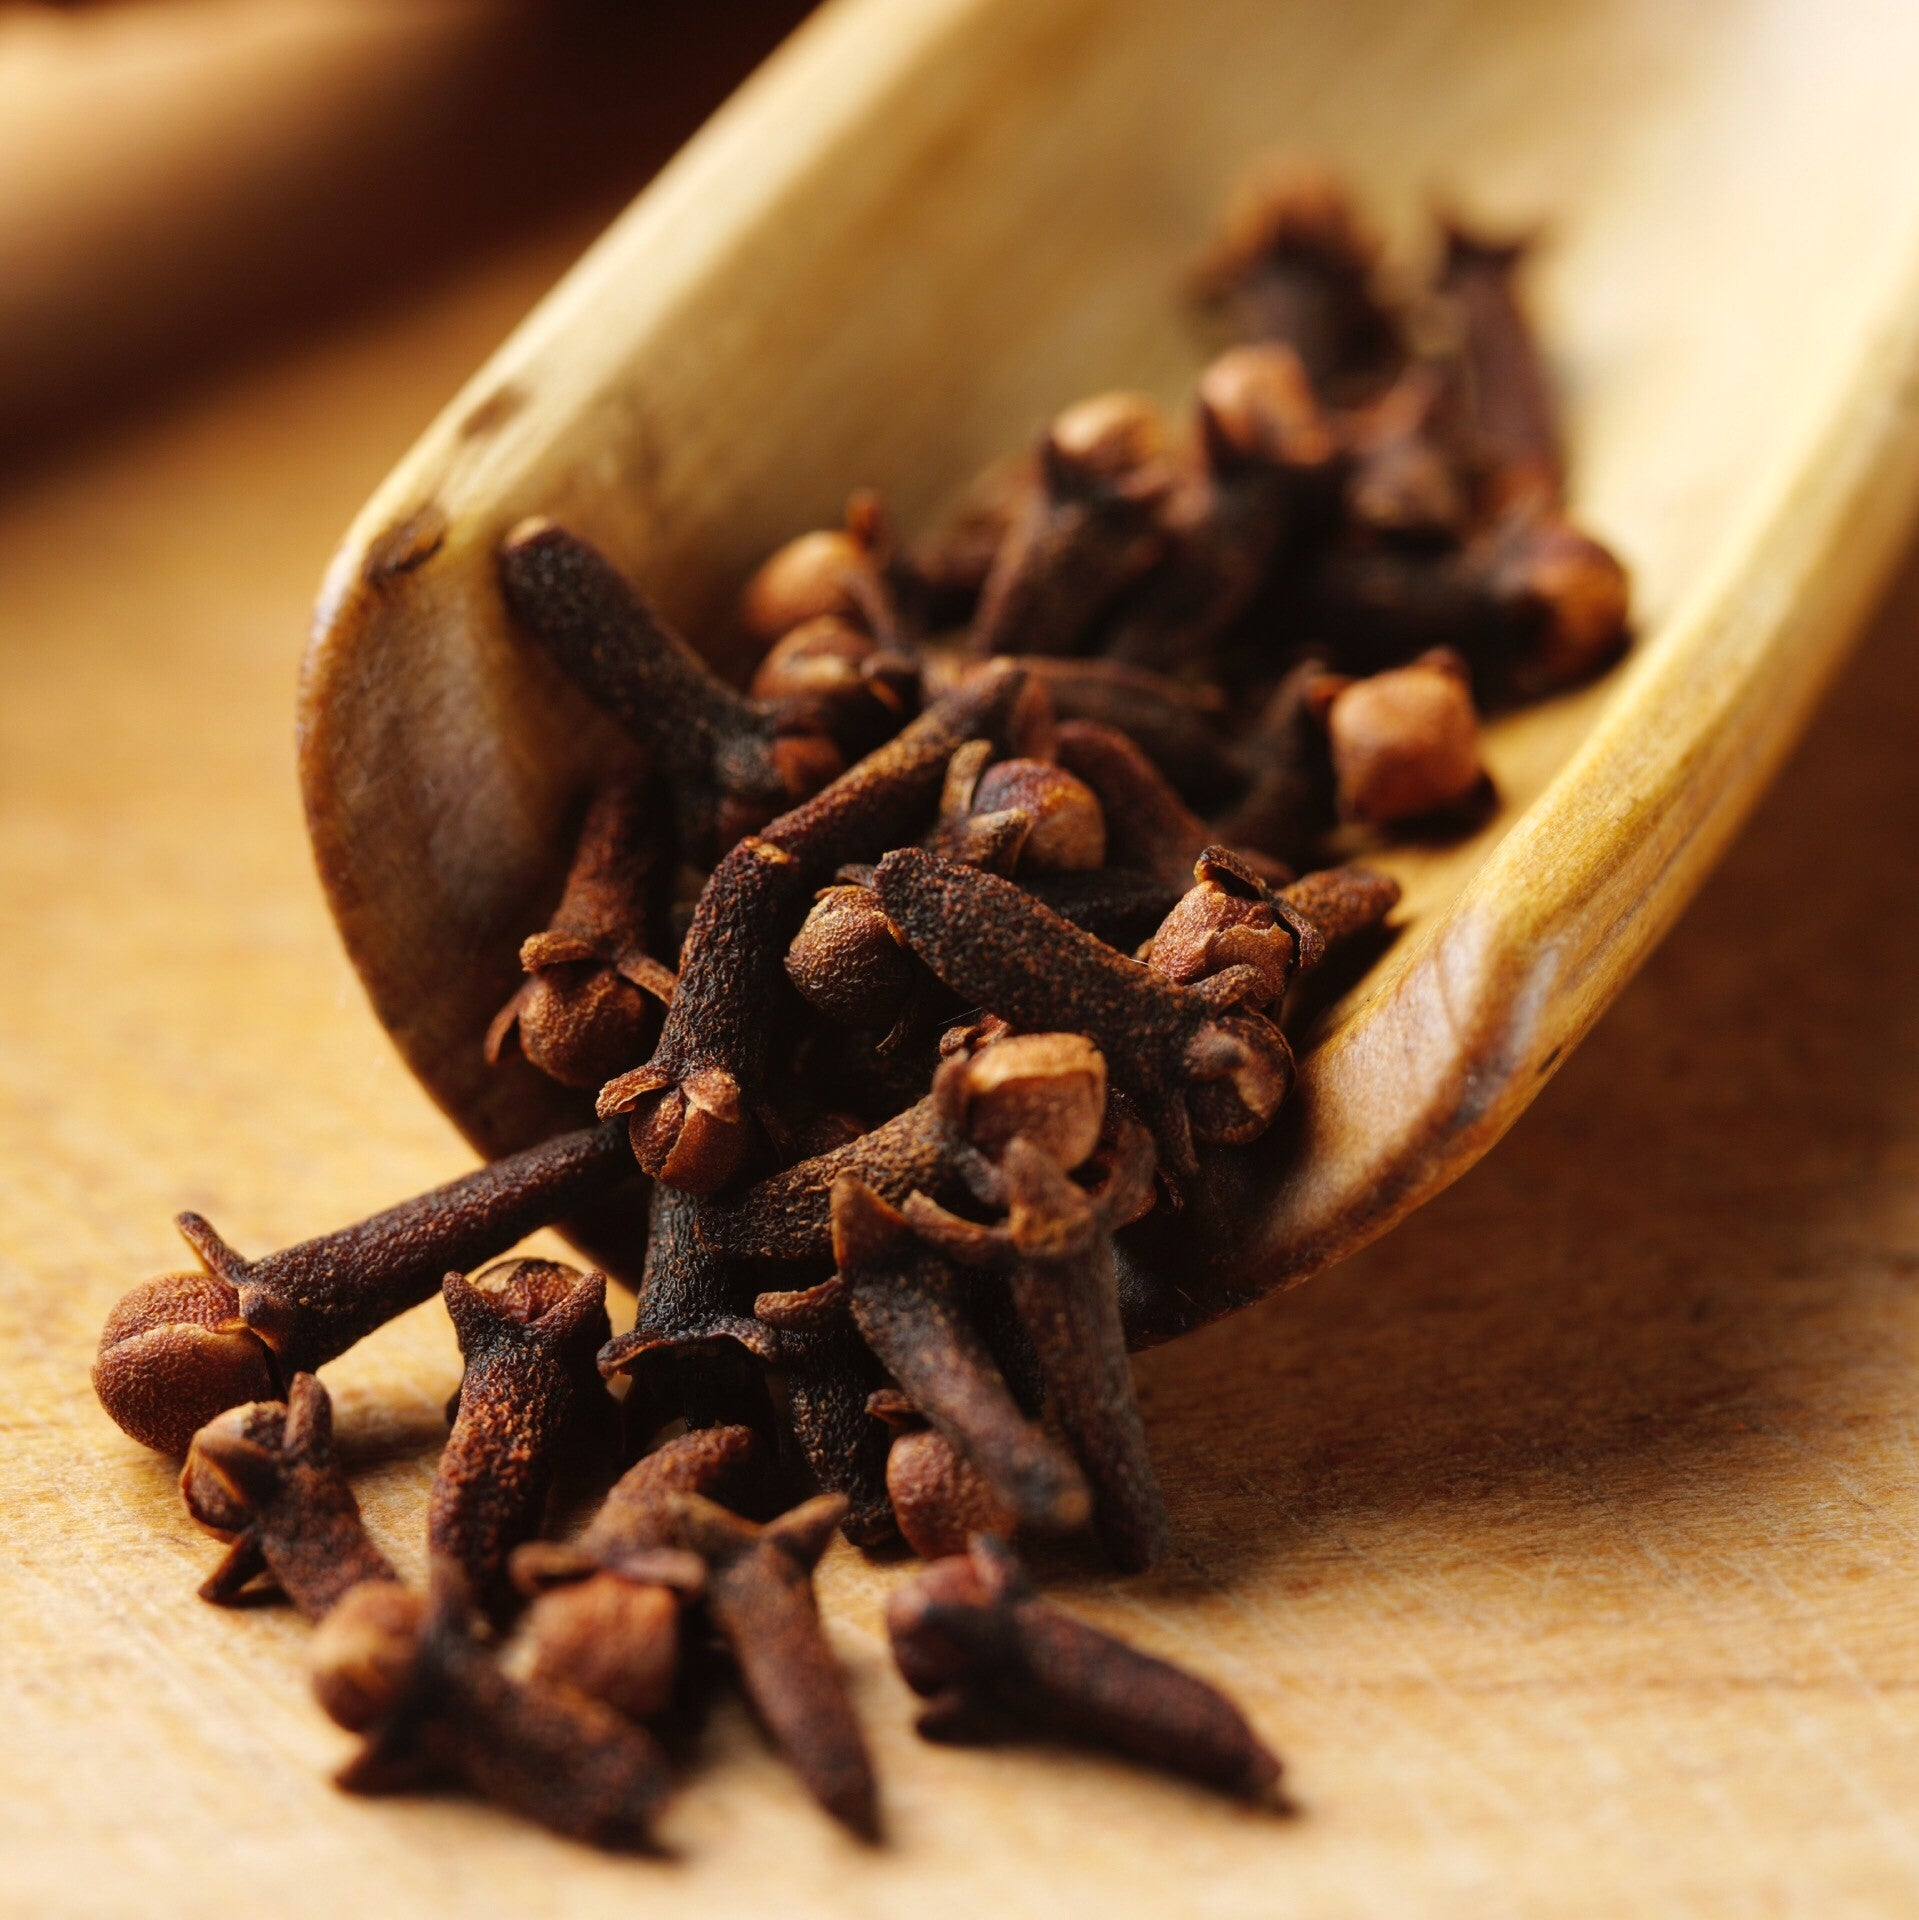 Cloves - Whole - The Tea & Spice Shoppe